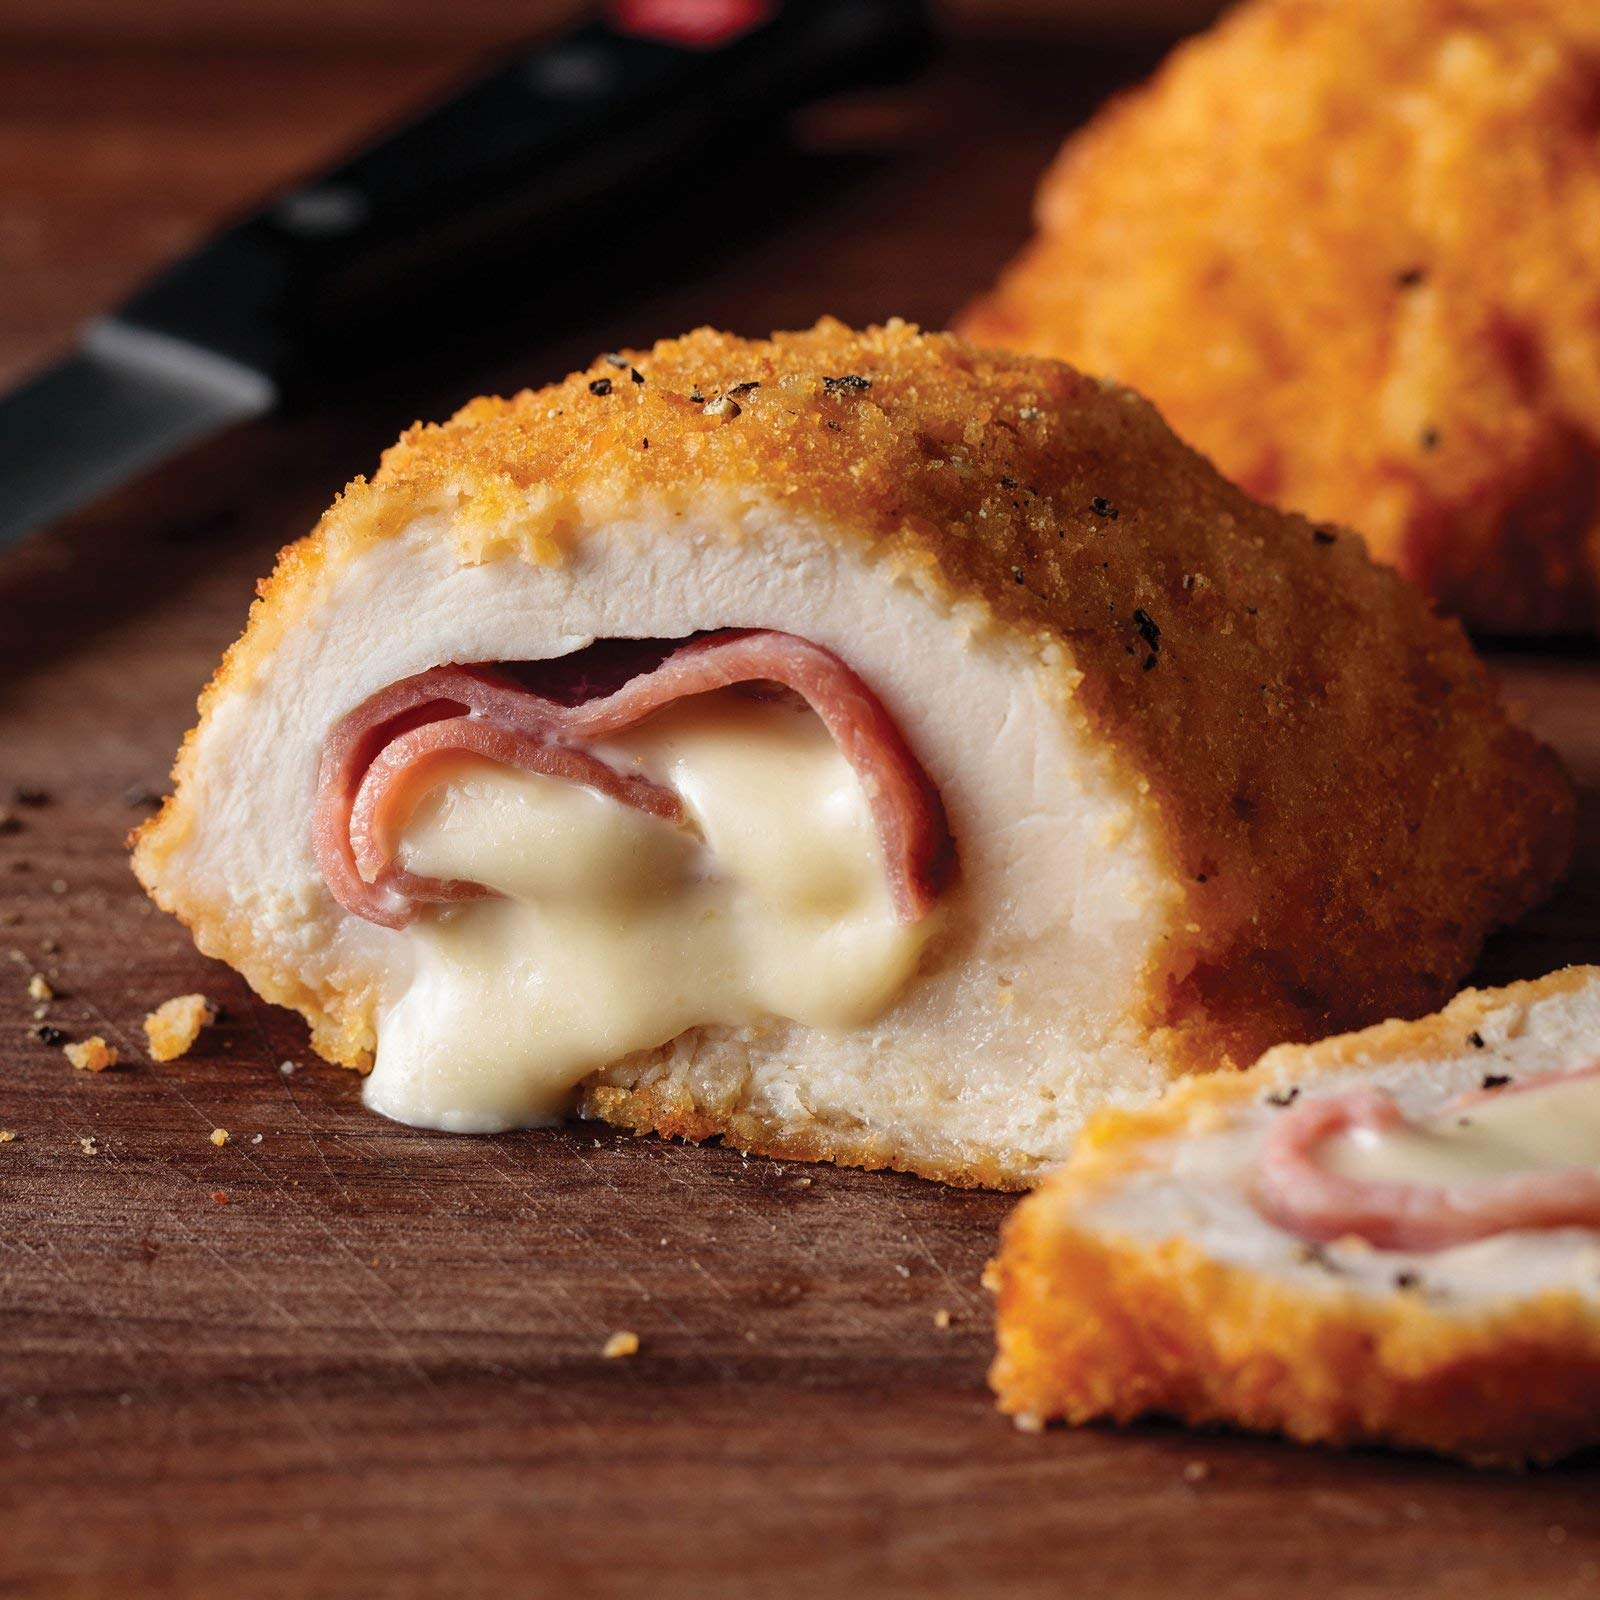 Omaha Steaks 2 (7.75 oz.) Chicken Cordon Bleu